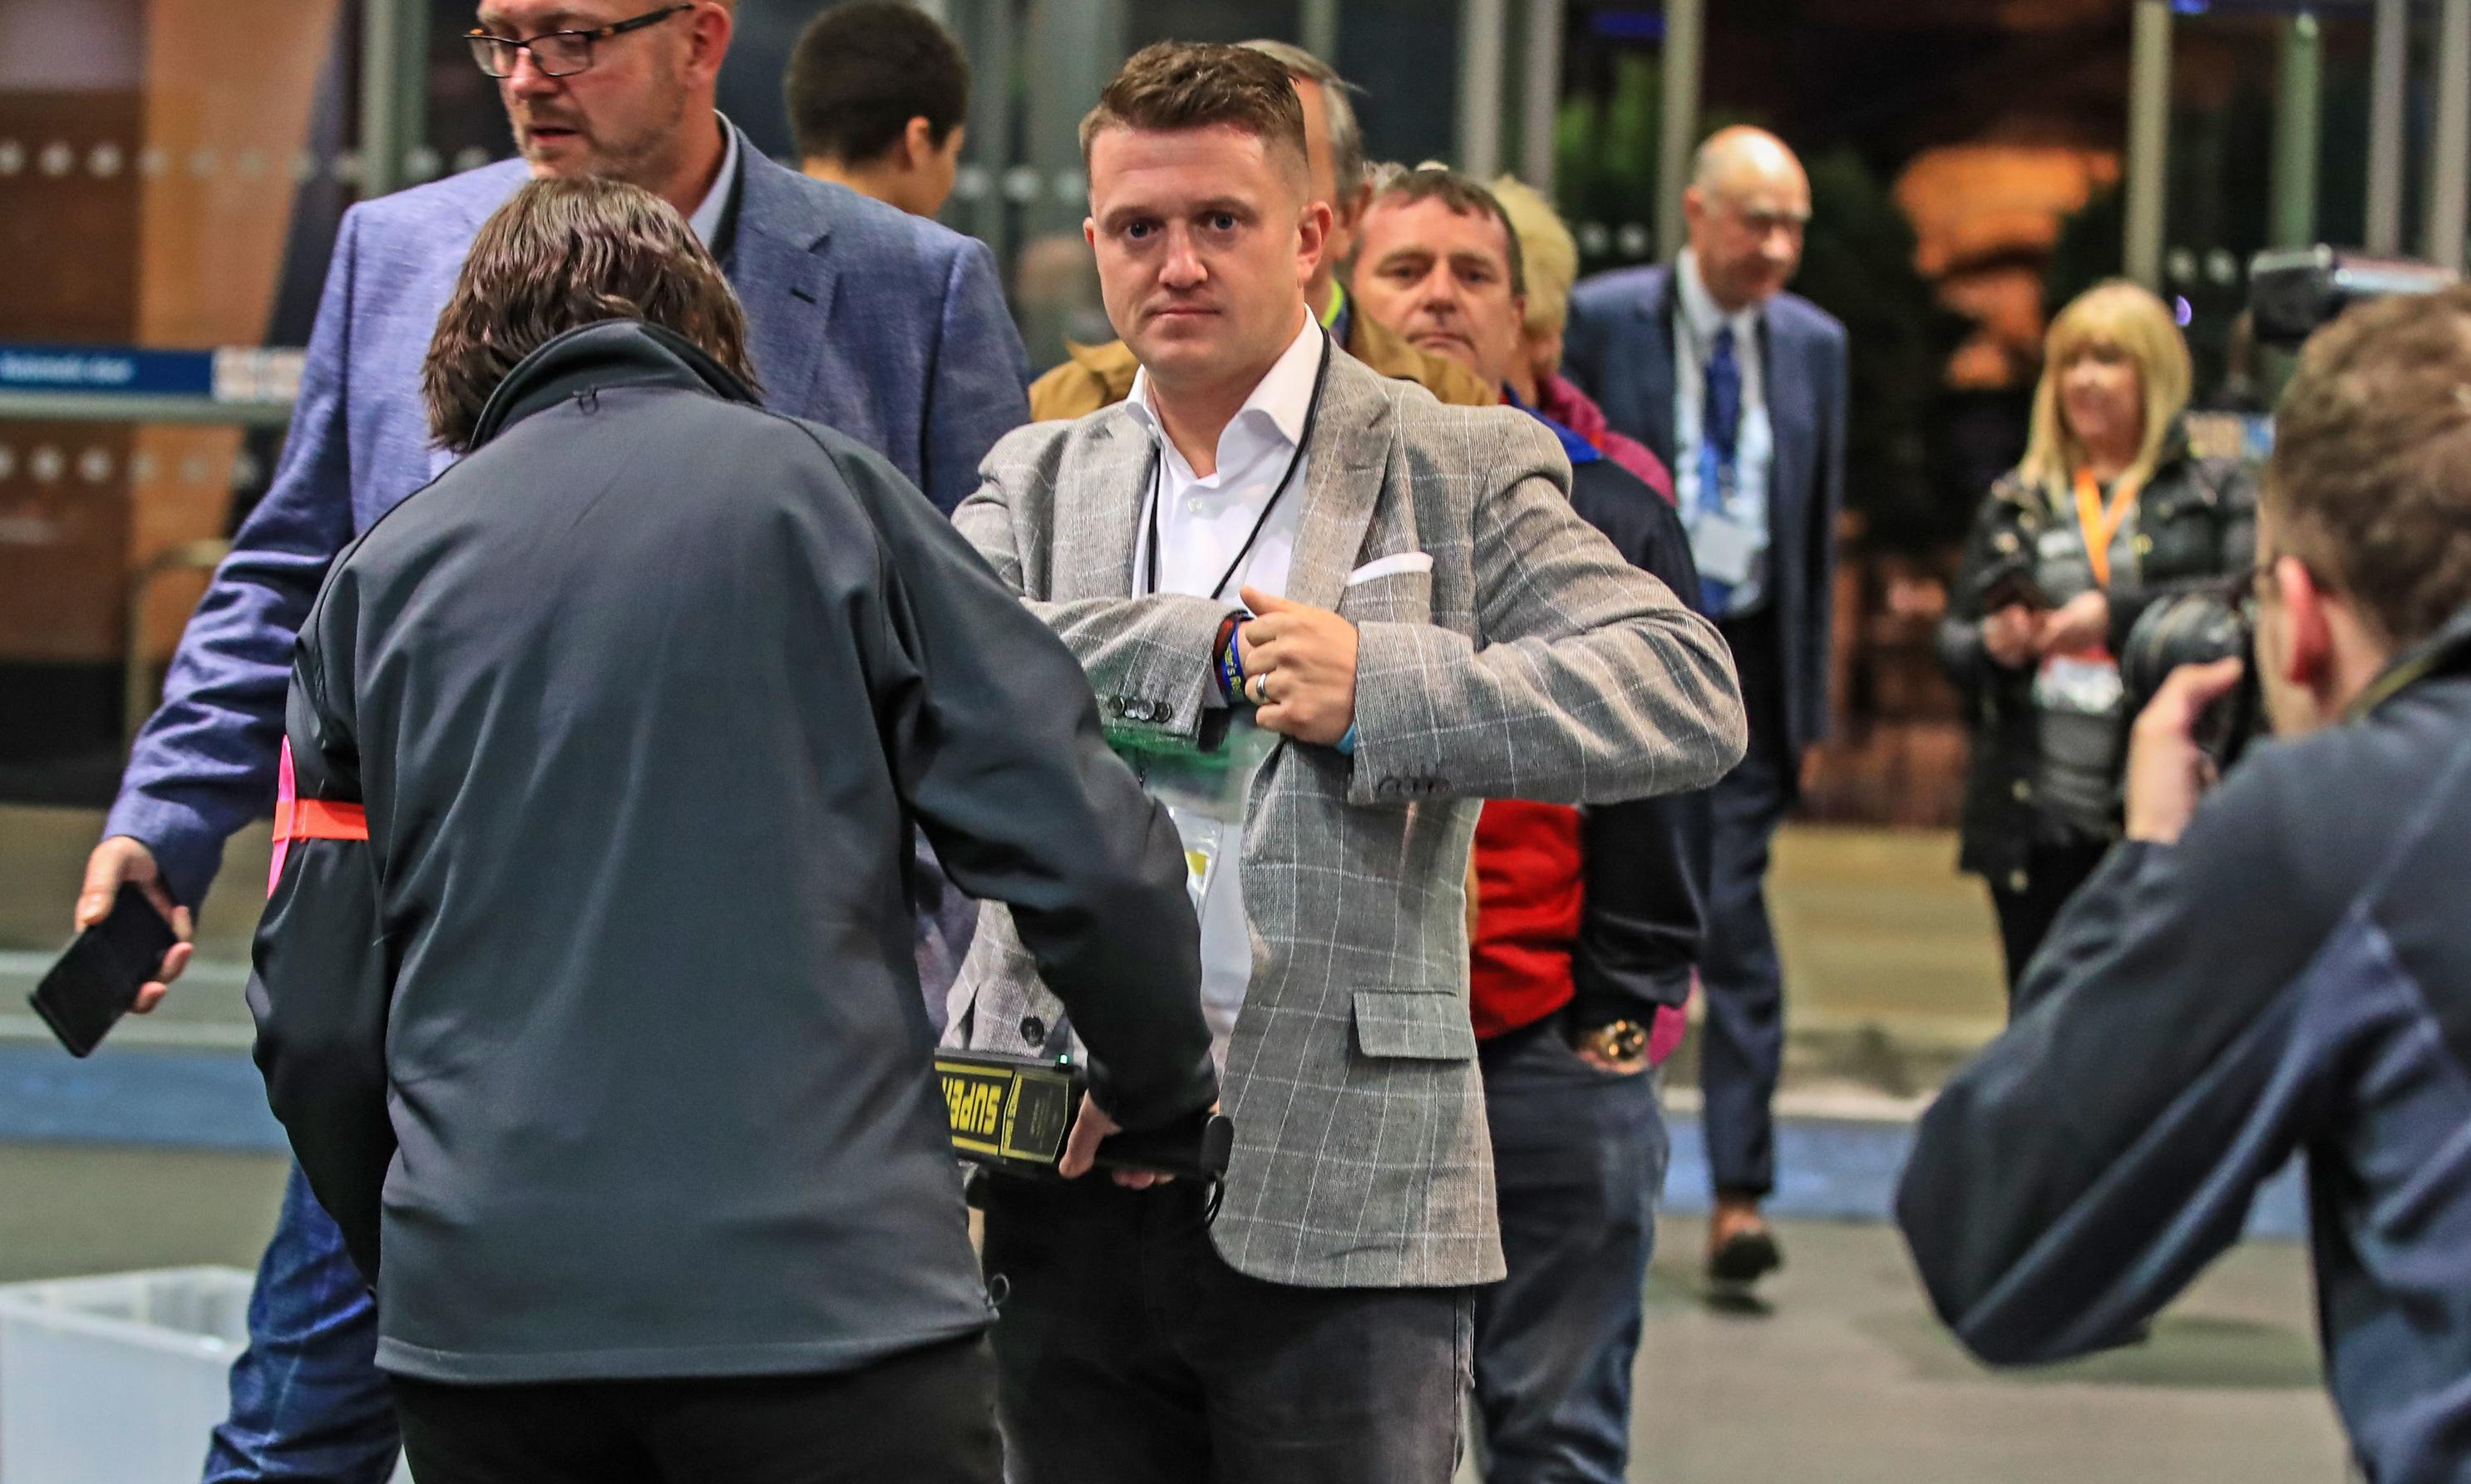 Humiliated Tommy Robinson sneaks out of election count early